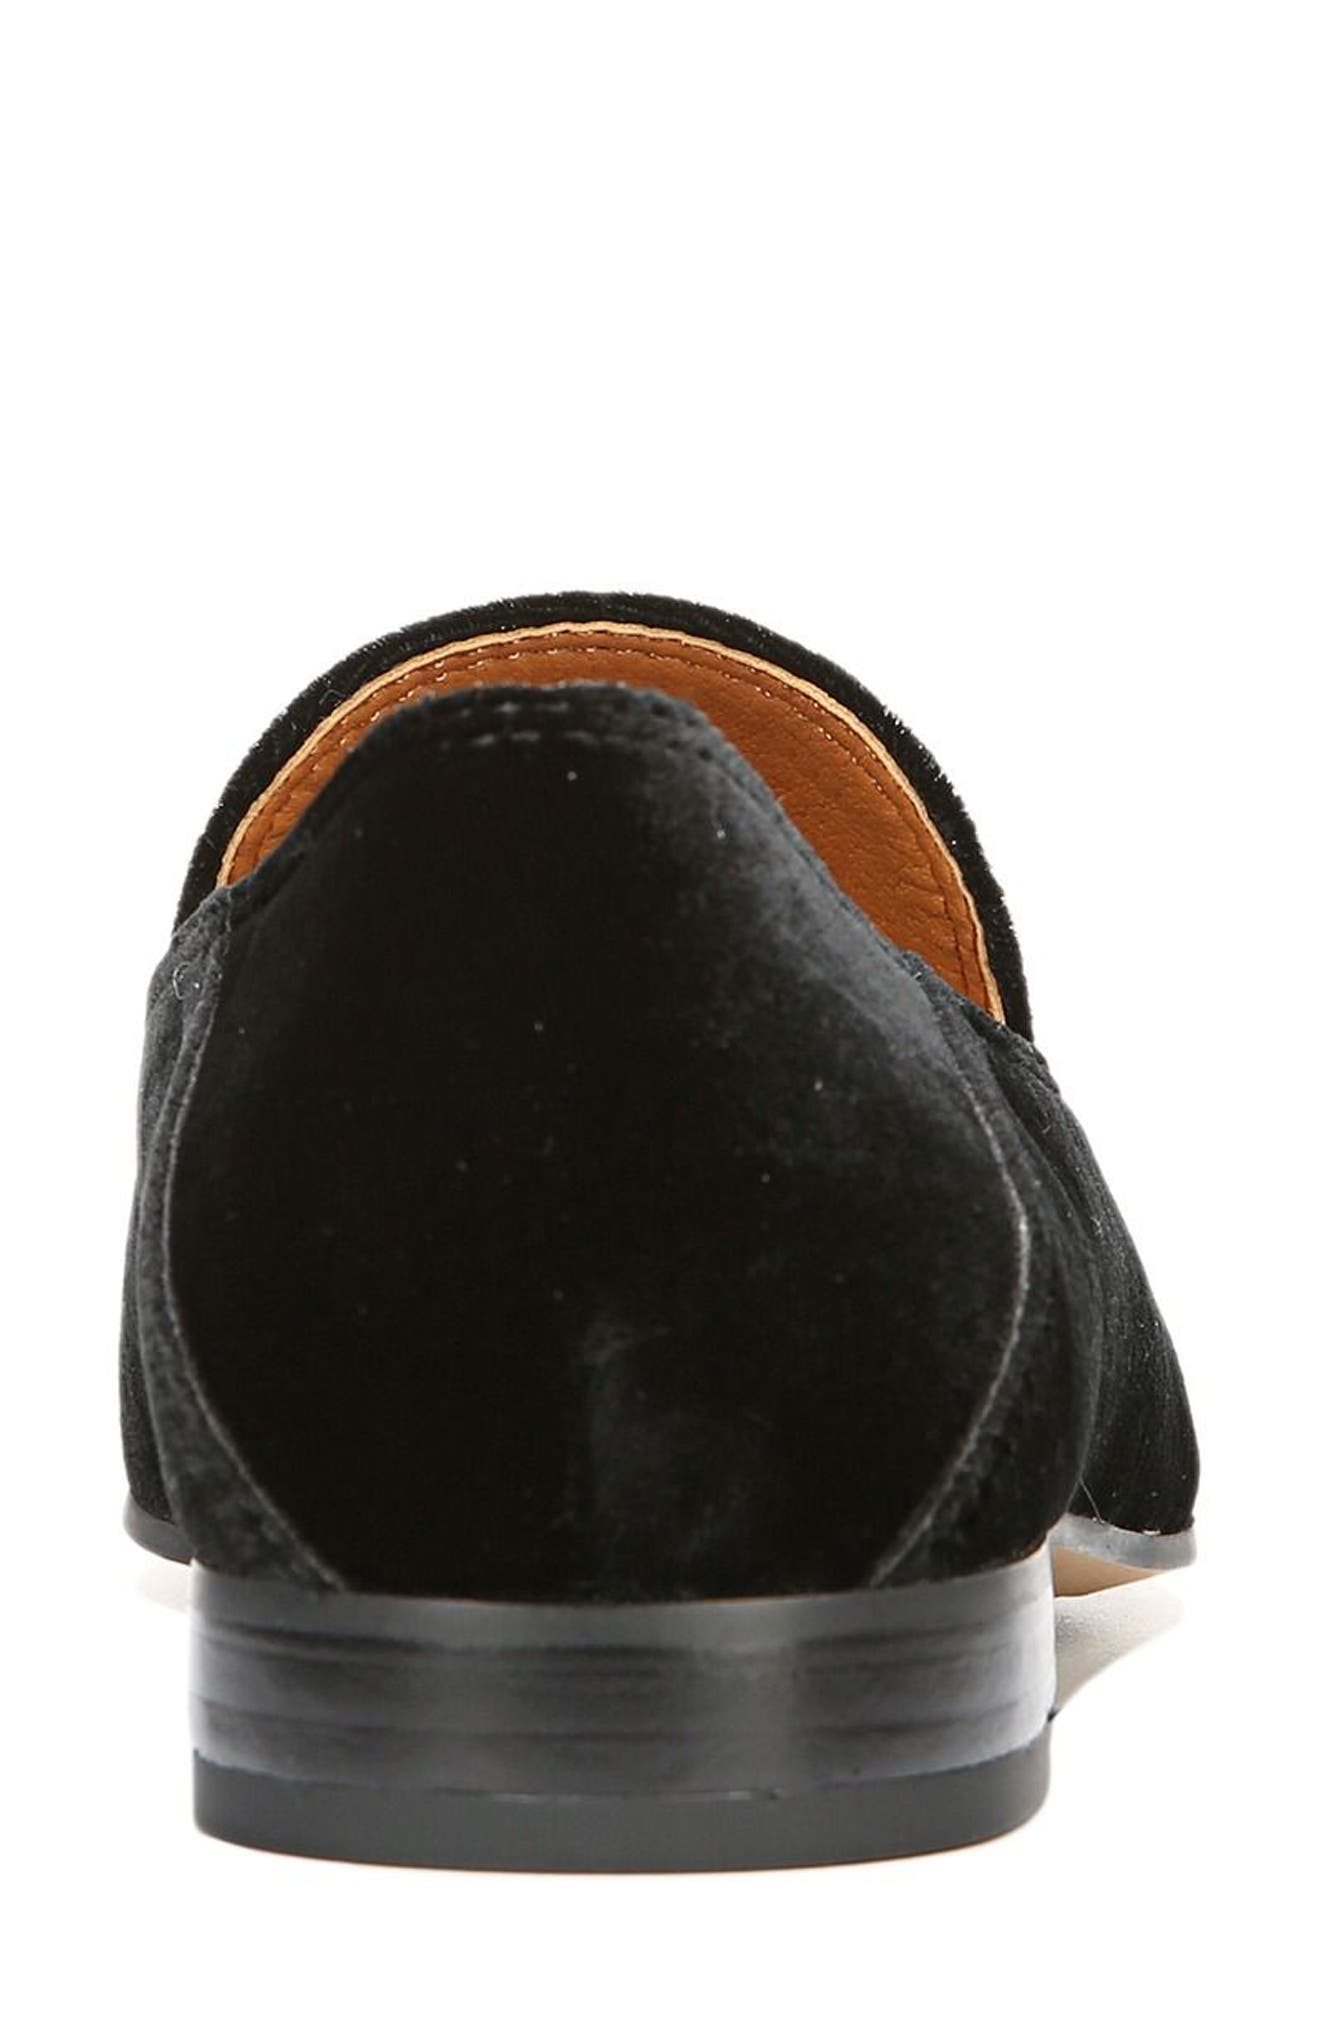 SARTO BY FRANCO SARTO,                             Kristen Loafer,                             Alternate thumbnail 7, color,                             001